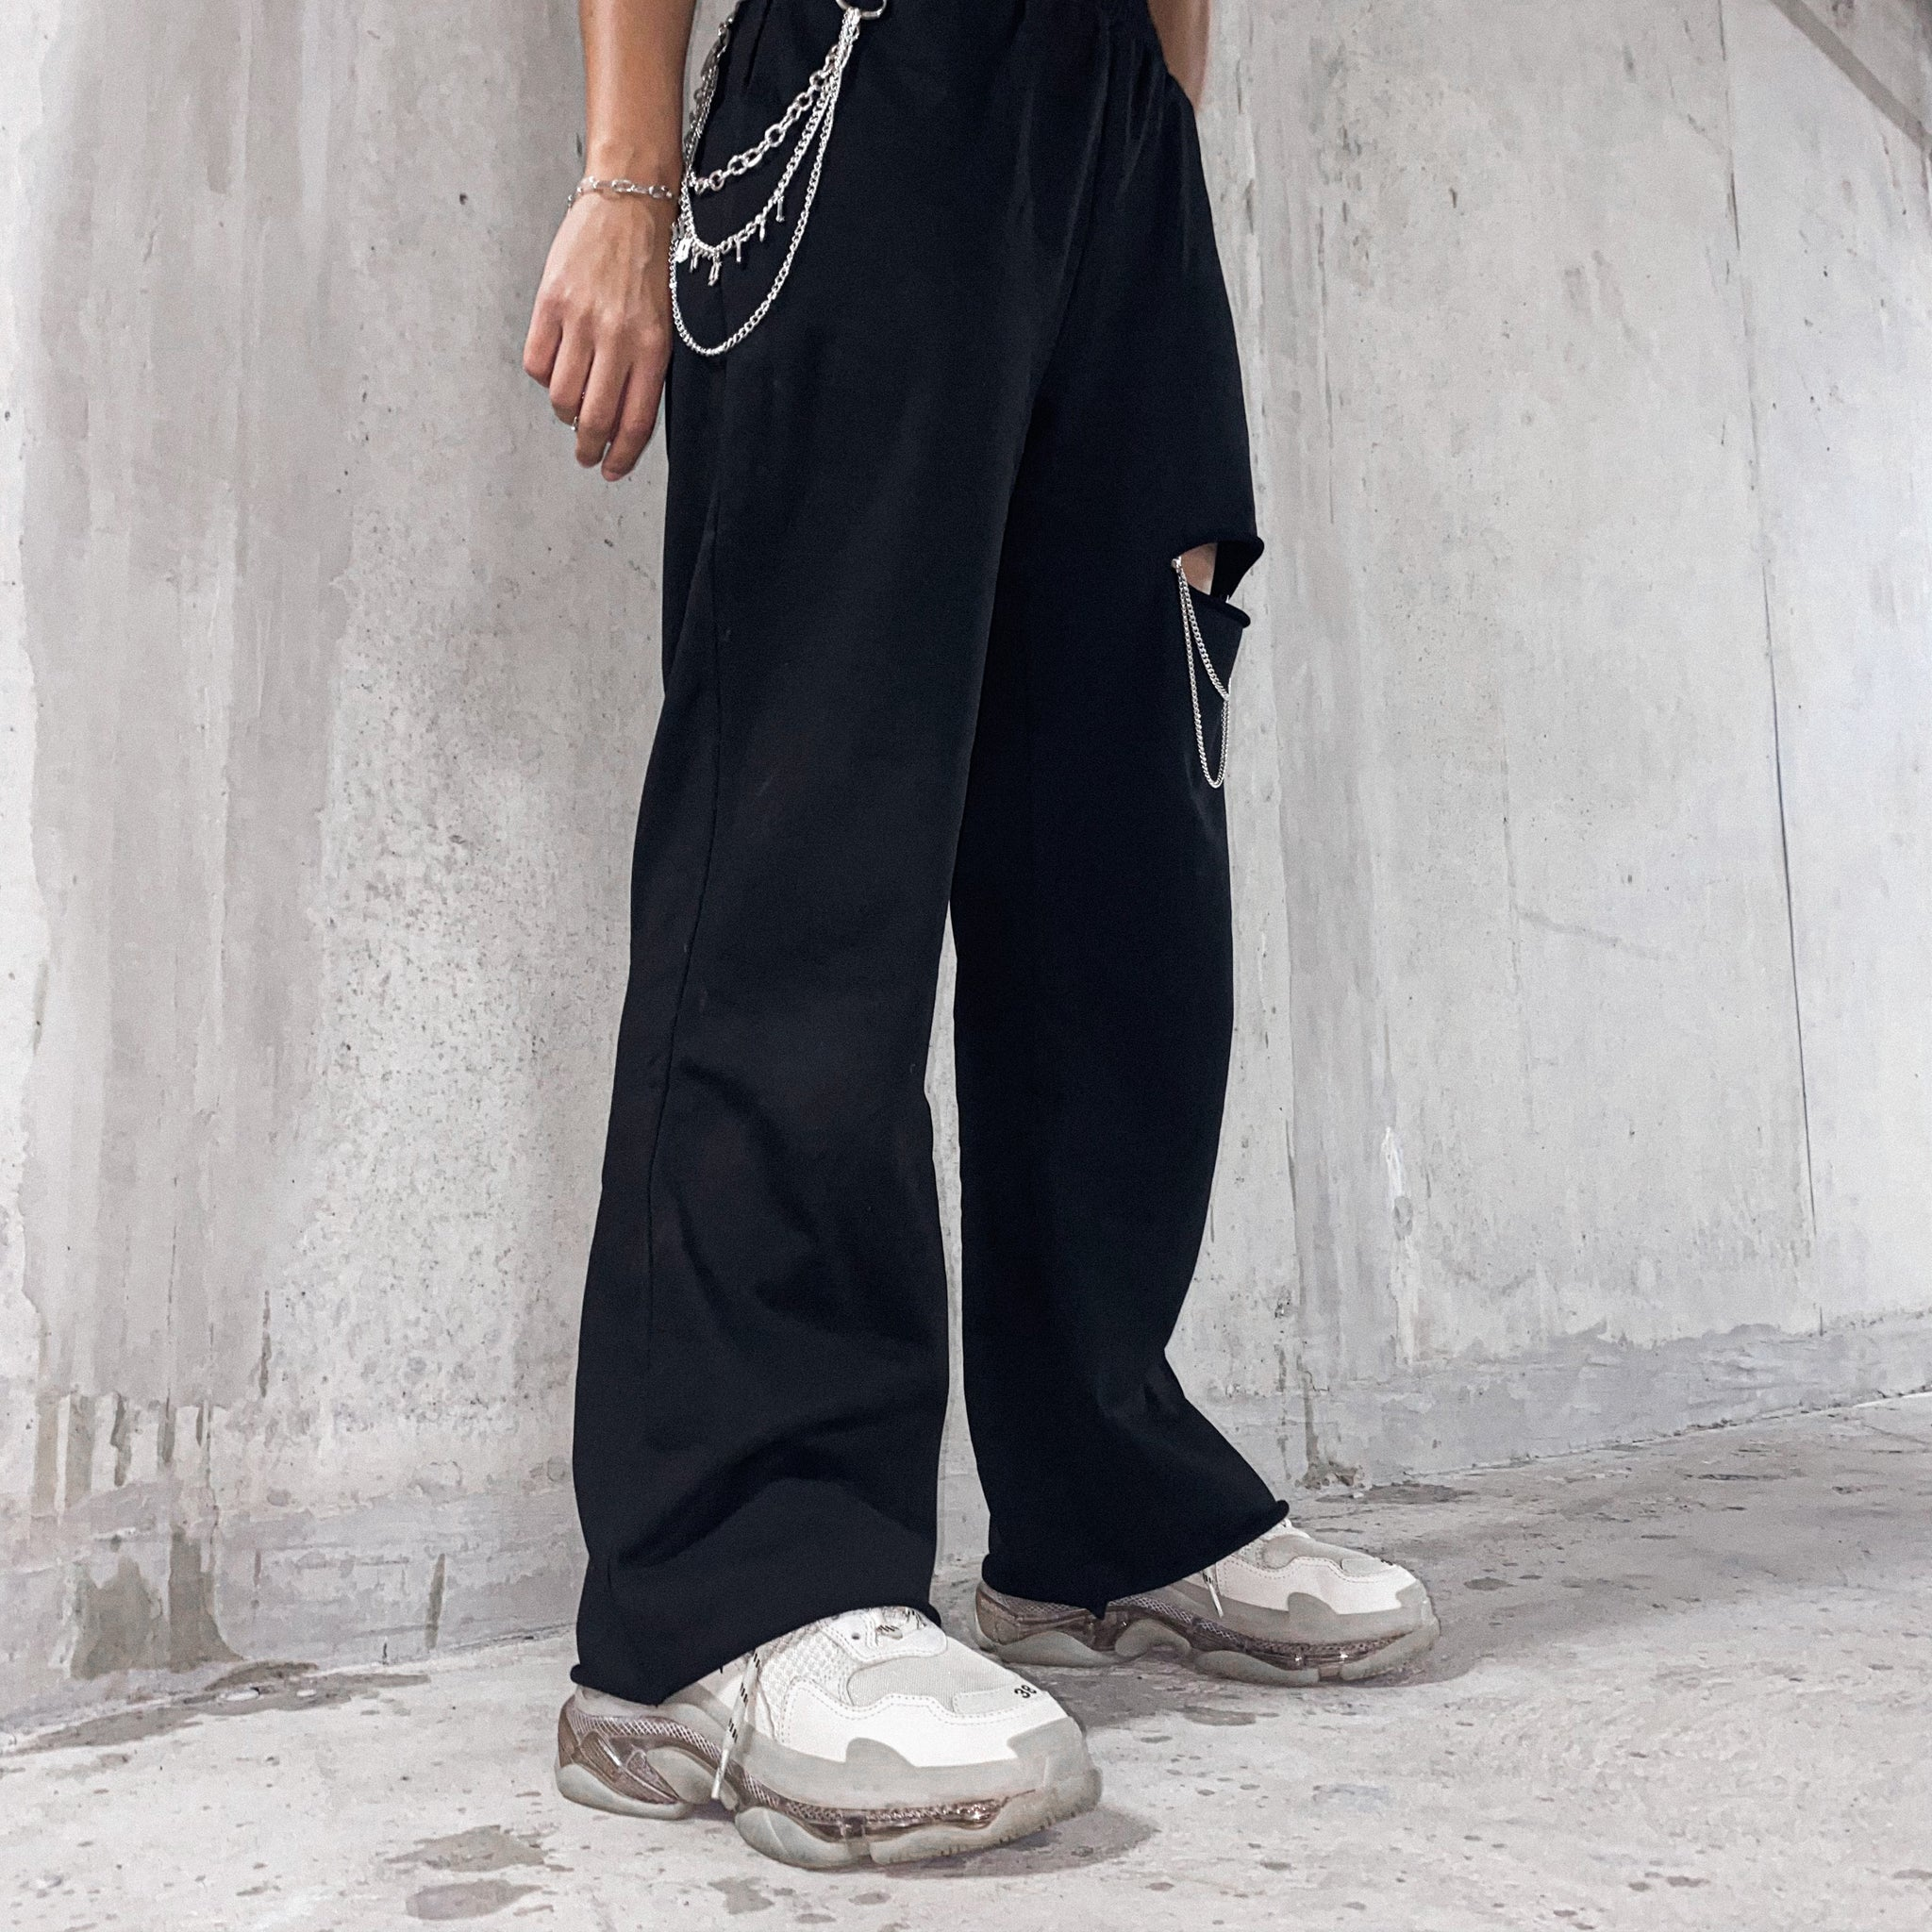 Chain reaction joggers - TALL